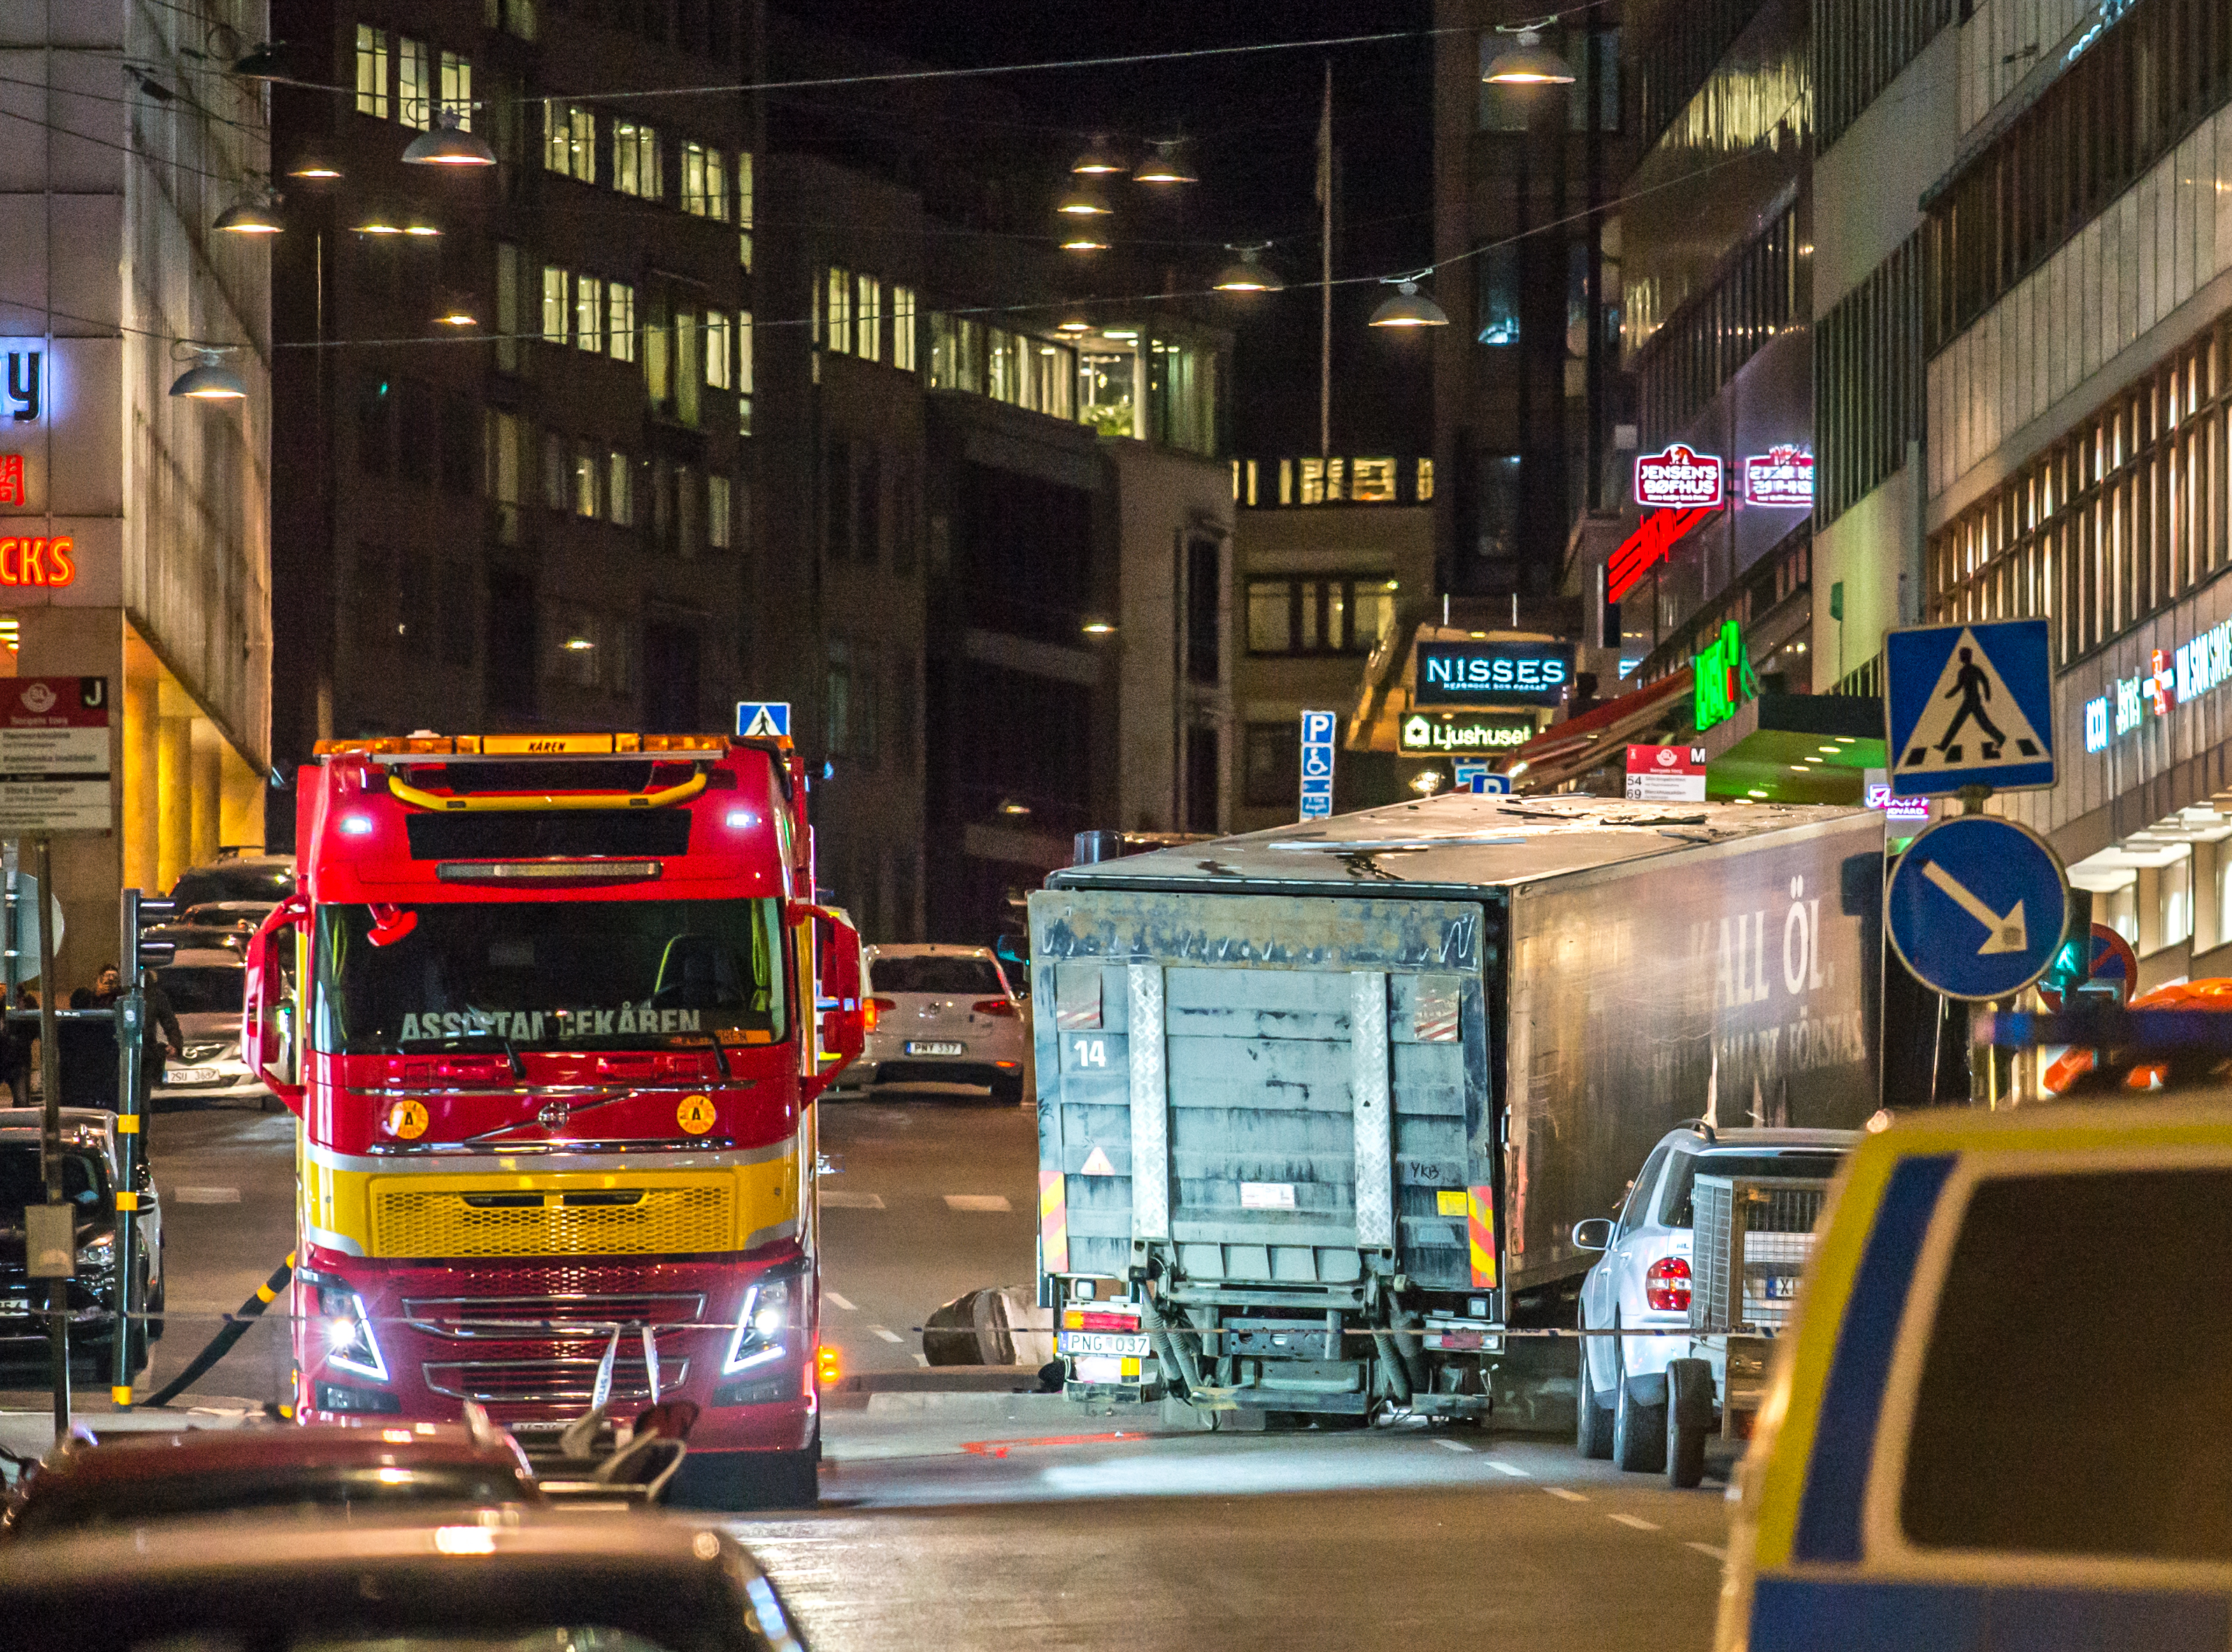 Tow Truck Wikipedia 9 Pin Deutch Connector On Semi Trucks Swedish Police Away The Attack After 2017 Stockholm